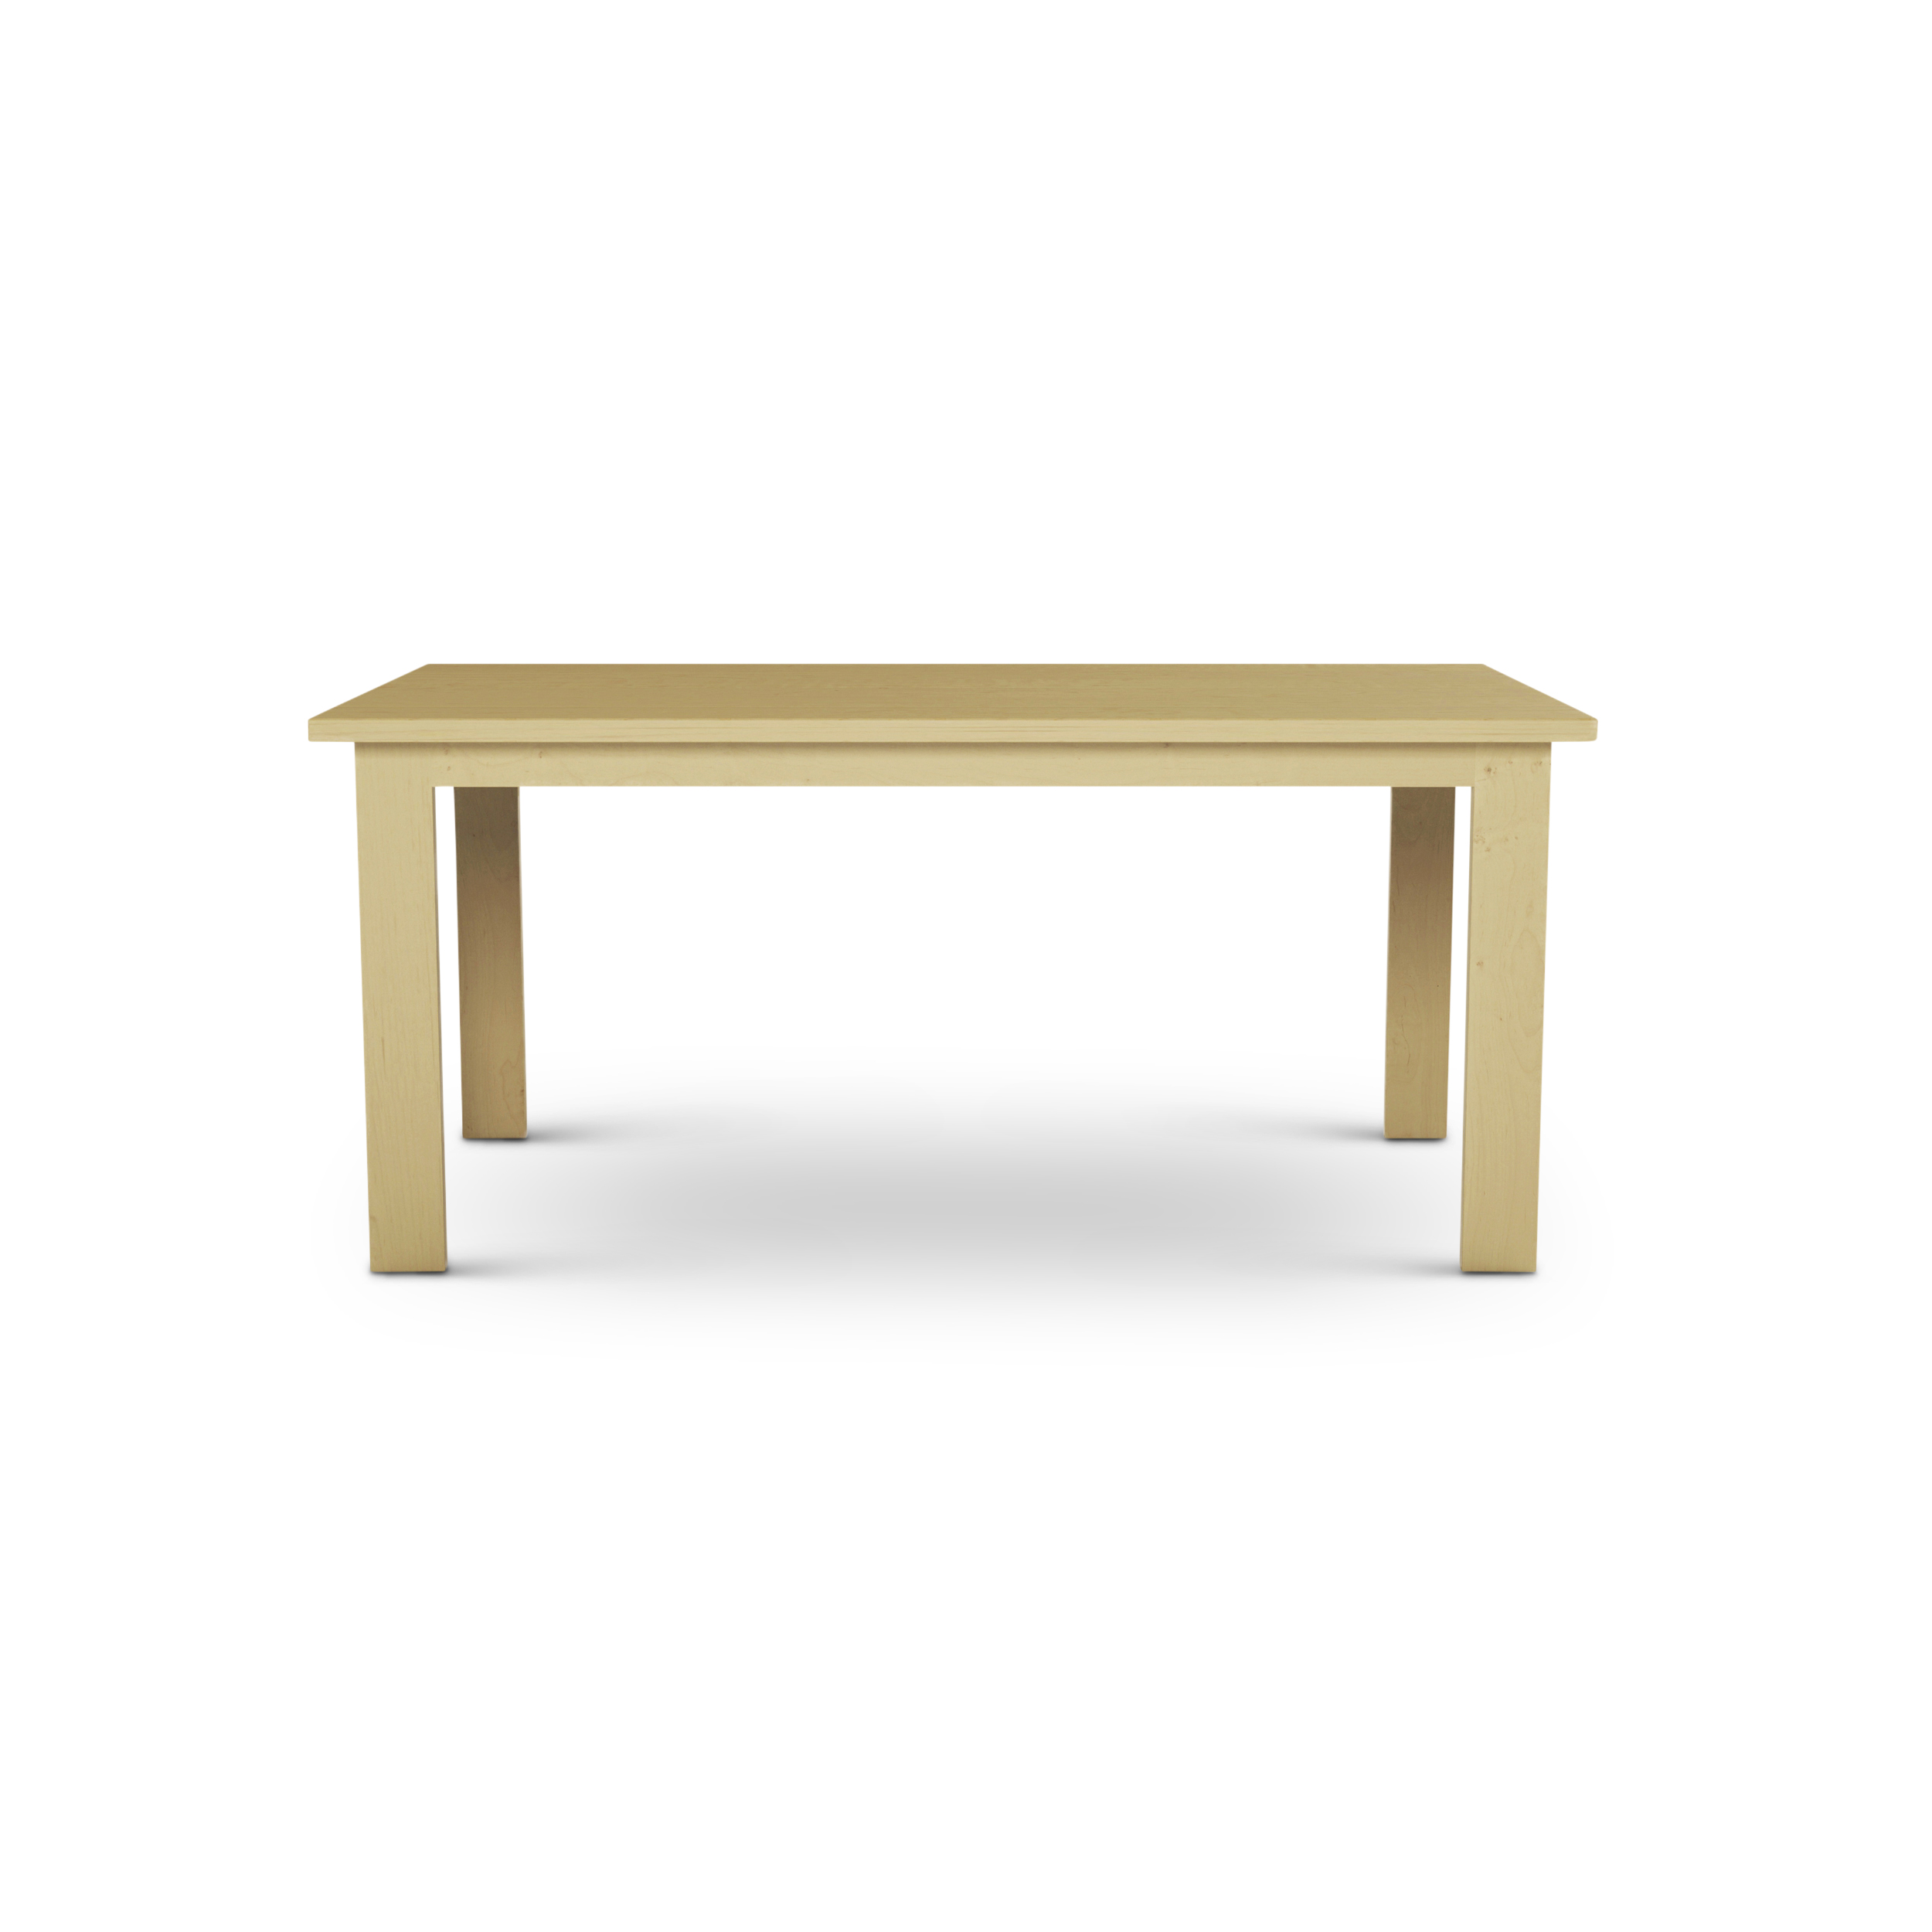 Series 424 66″ Table